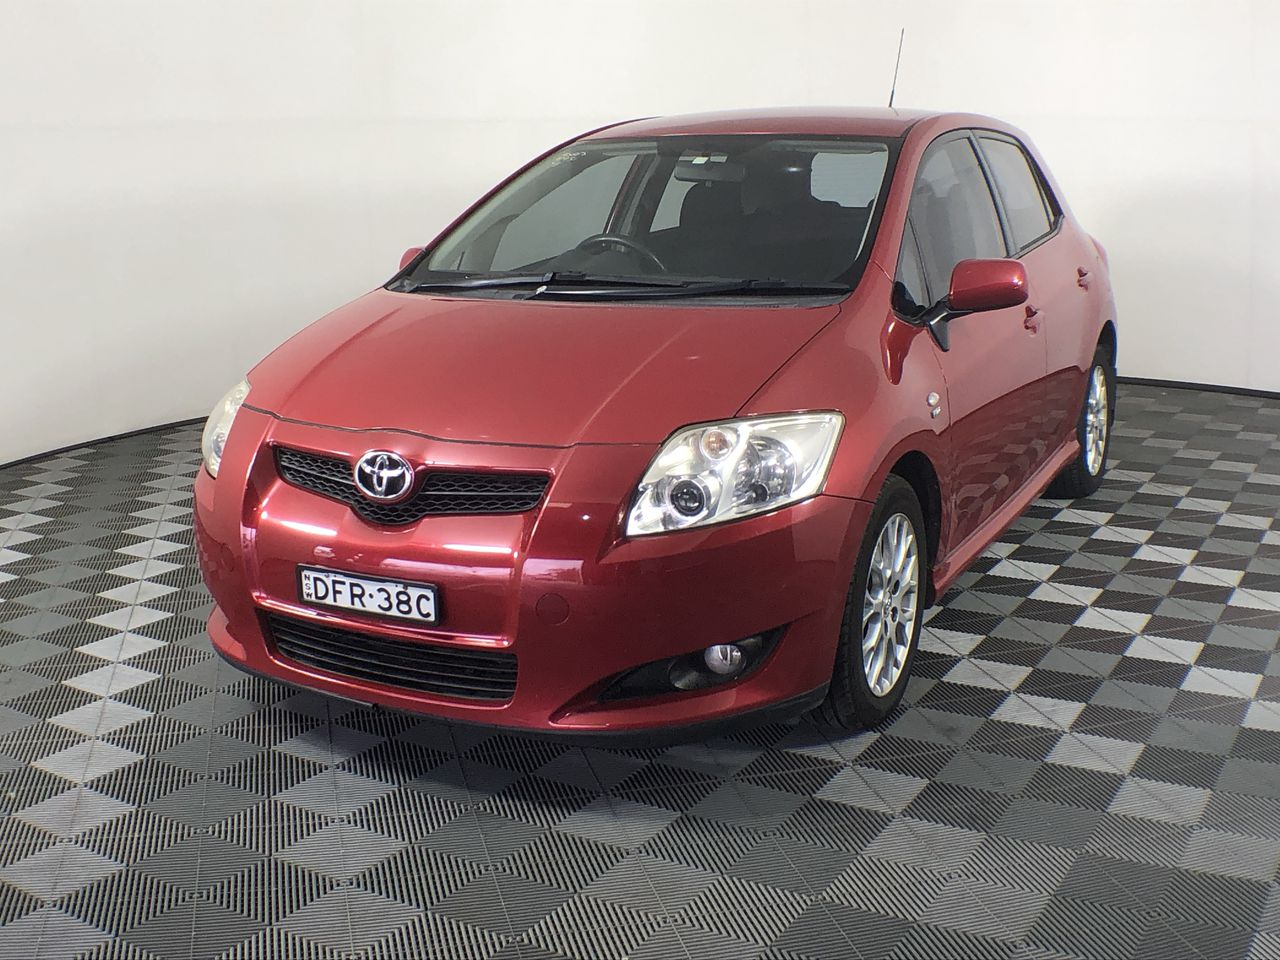 2009 Toyota Corolla Levin SX ZRE152R Automatic Hatchback (WOVR)